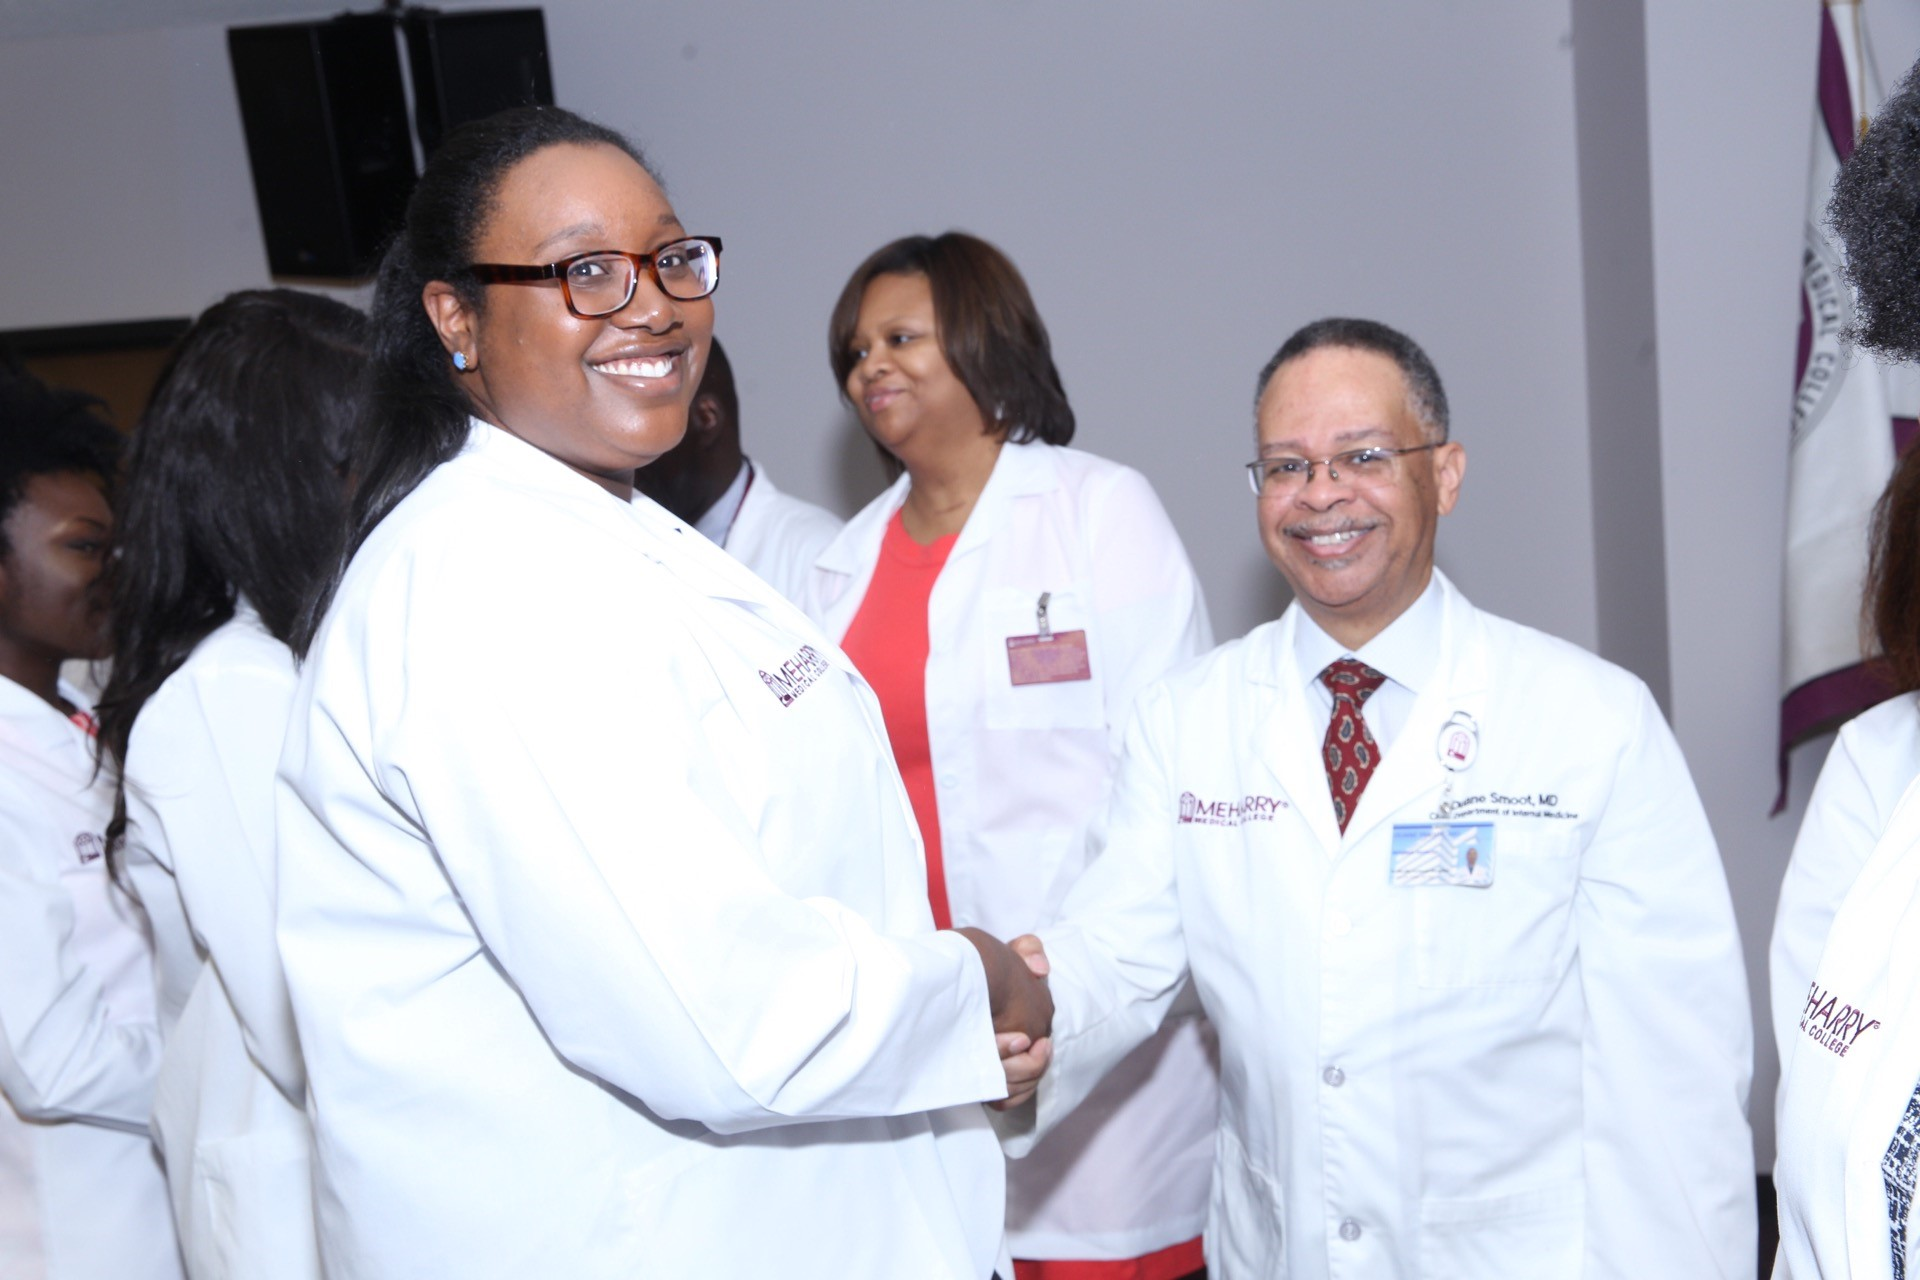 LARGEST MEDICAL CLASS IN MEHARRY'S HISTORY RECEIVES WHITE COATS ...